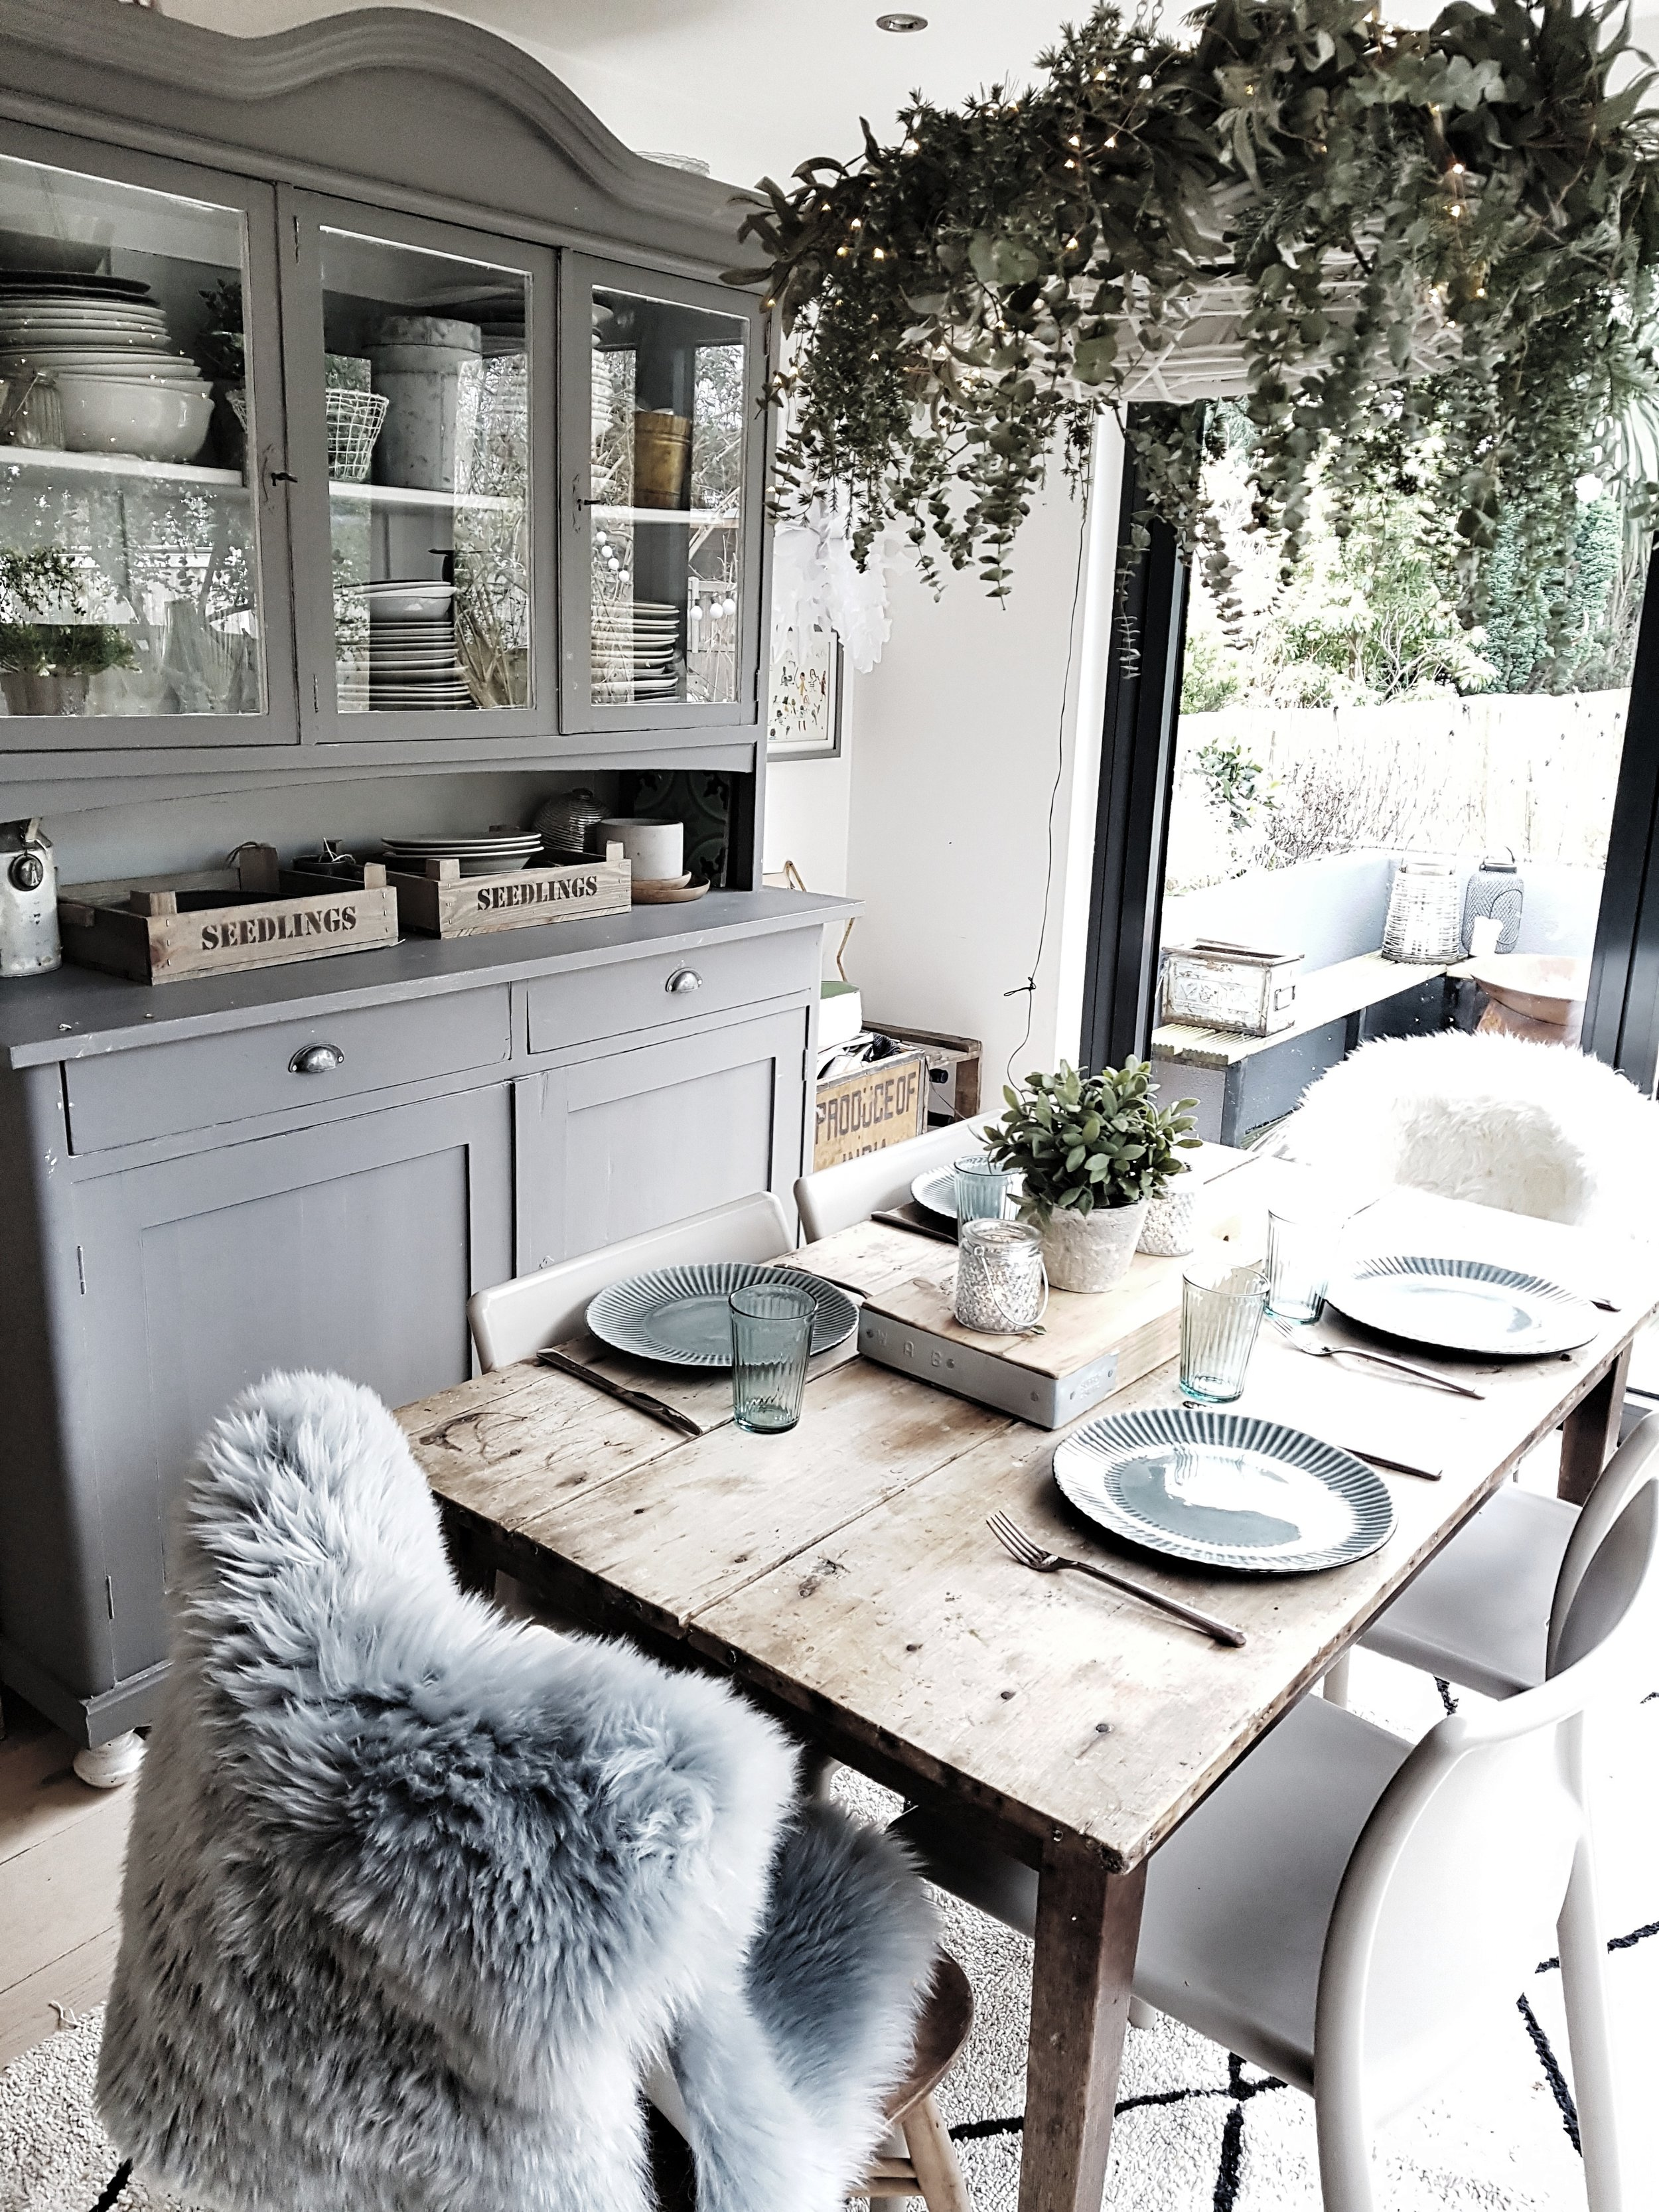 Our kitchen table board room Chez Malmo & Moss